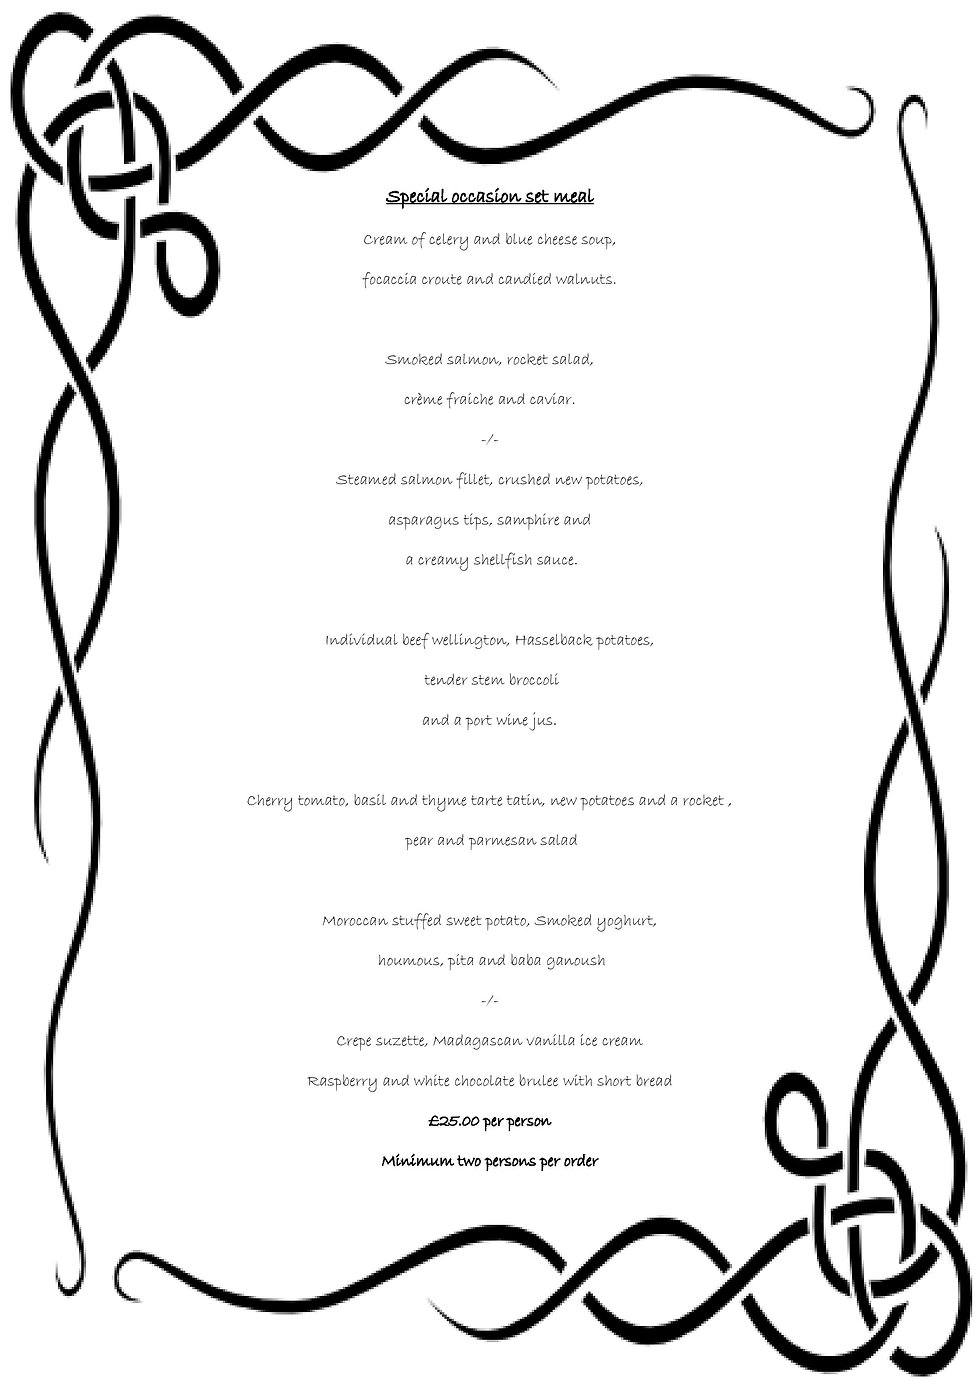 special occasion set meal-page-001.jpg